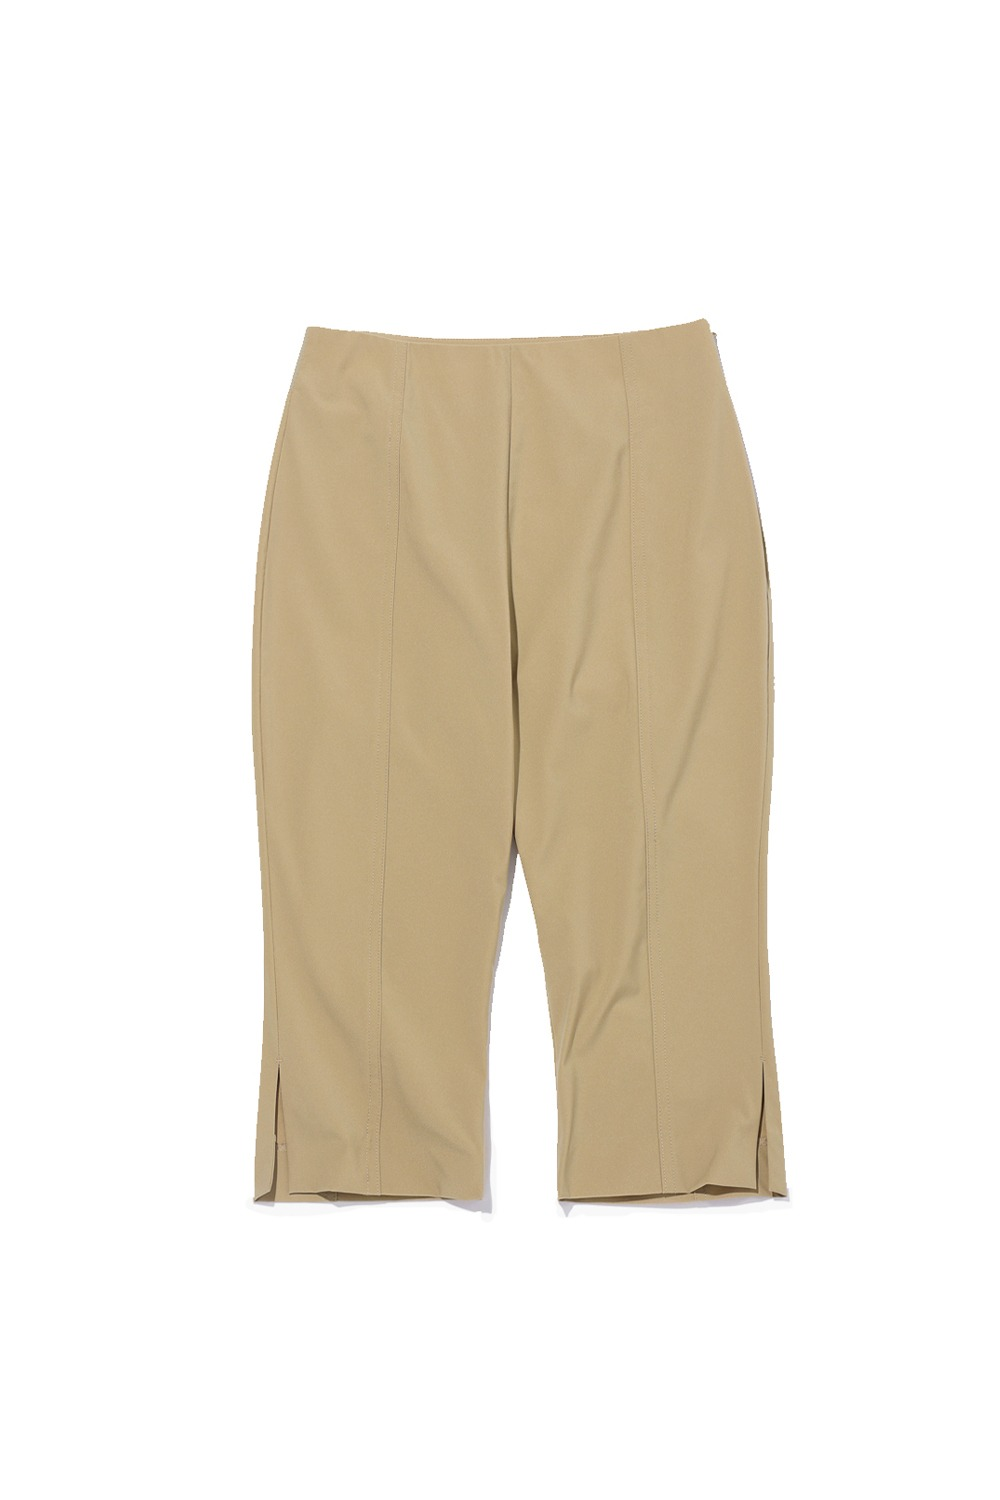 2021 CALL OUT_HIGH-RISE TAILORED BIKE SHORTS_BEIGE